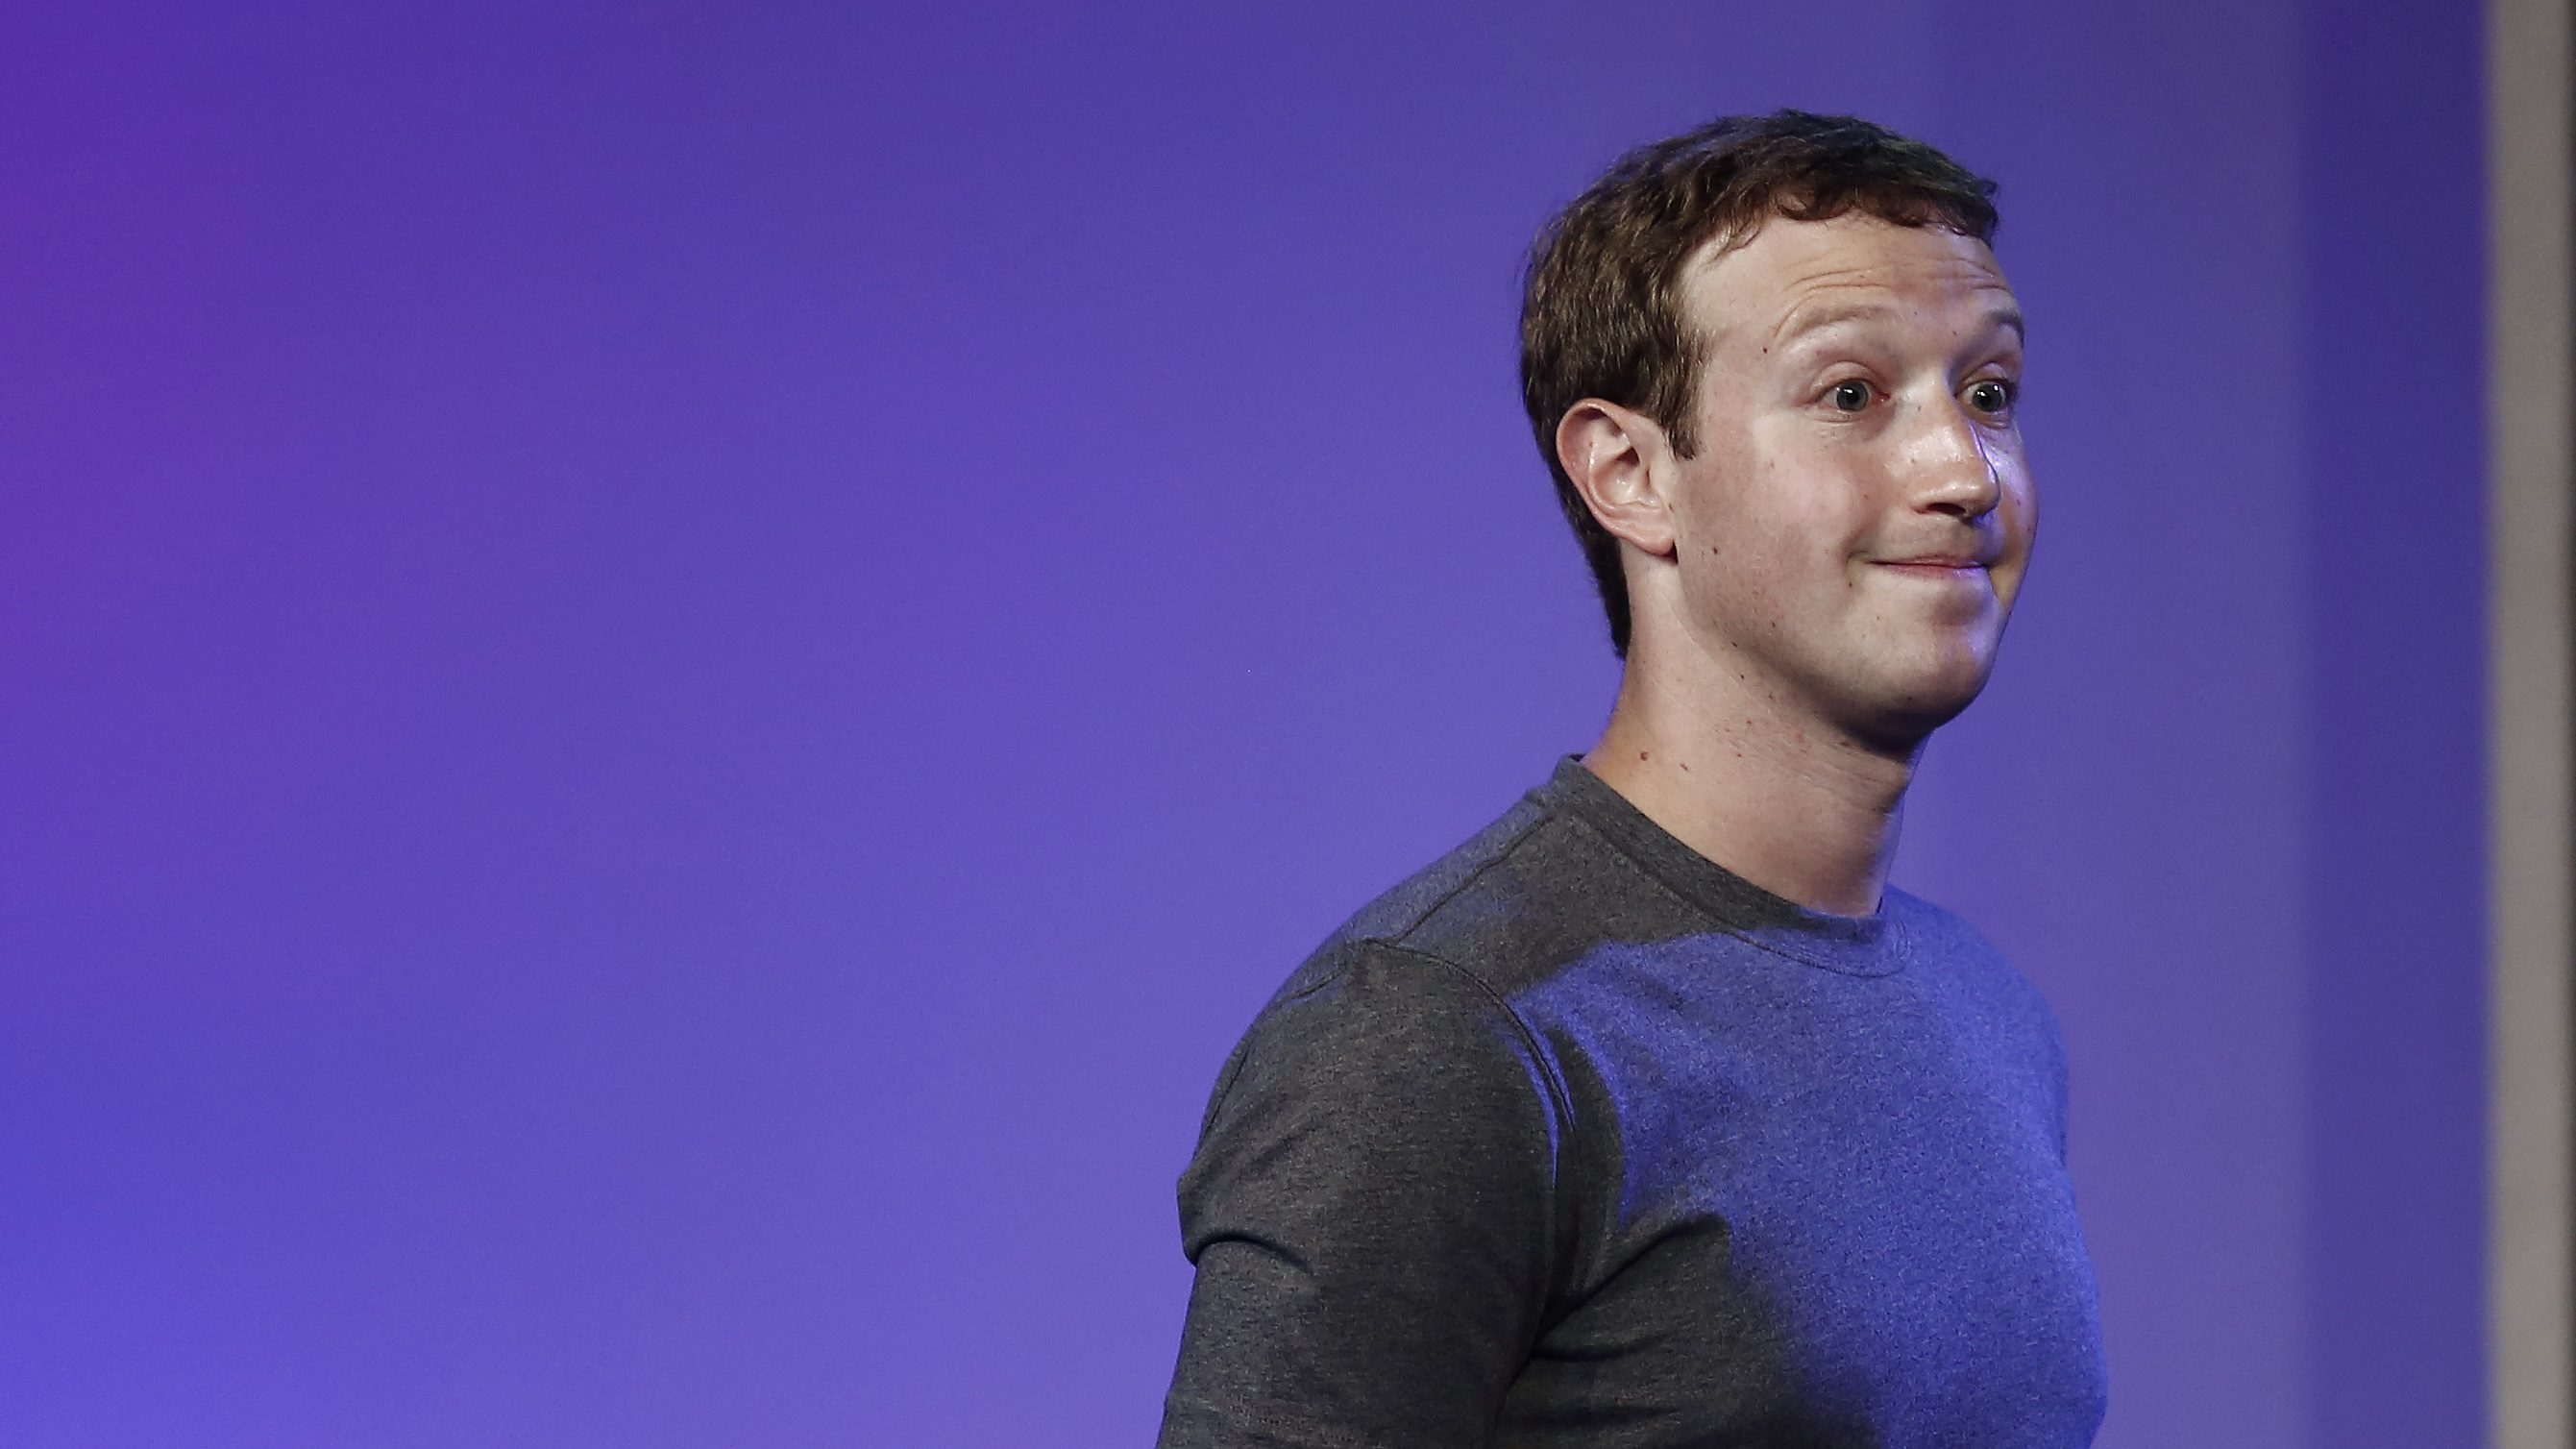 Mark Zuckerberg, founder and CEO of Facebook, reacts during an address to a gathering at the Internet.org Summit in New Delhi